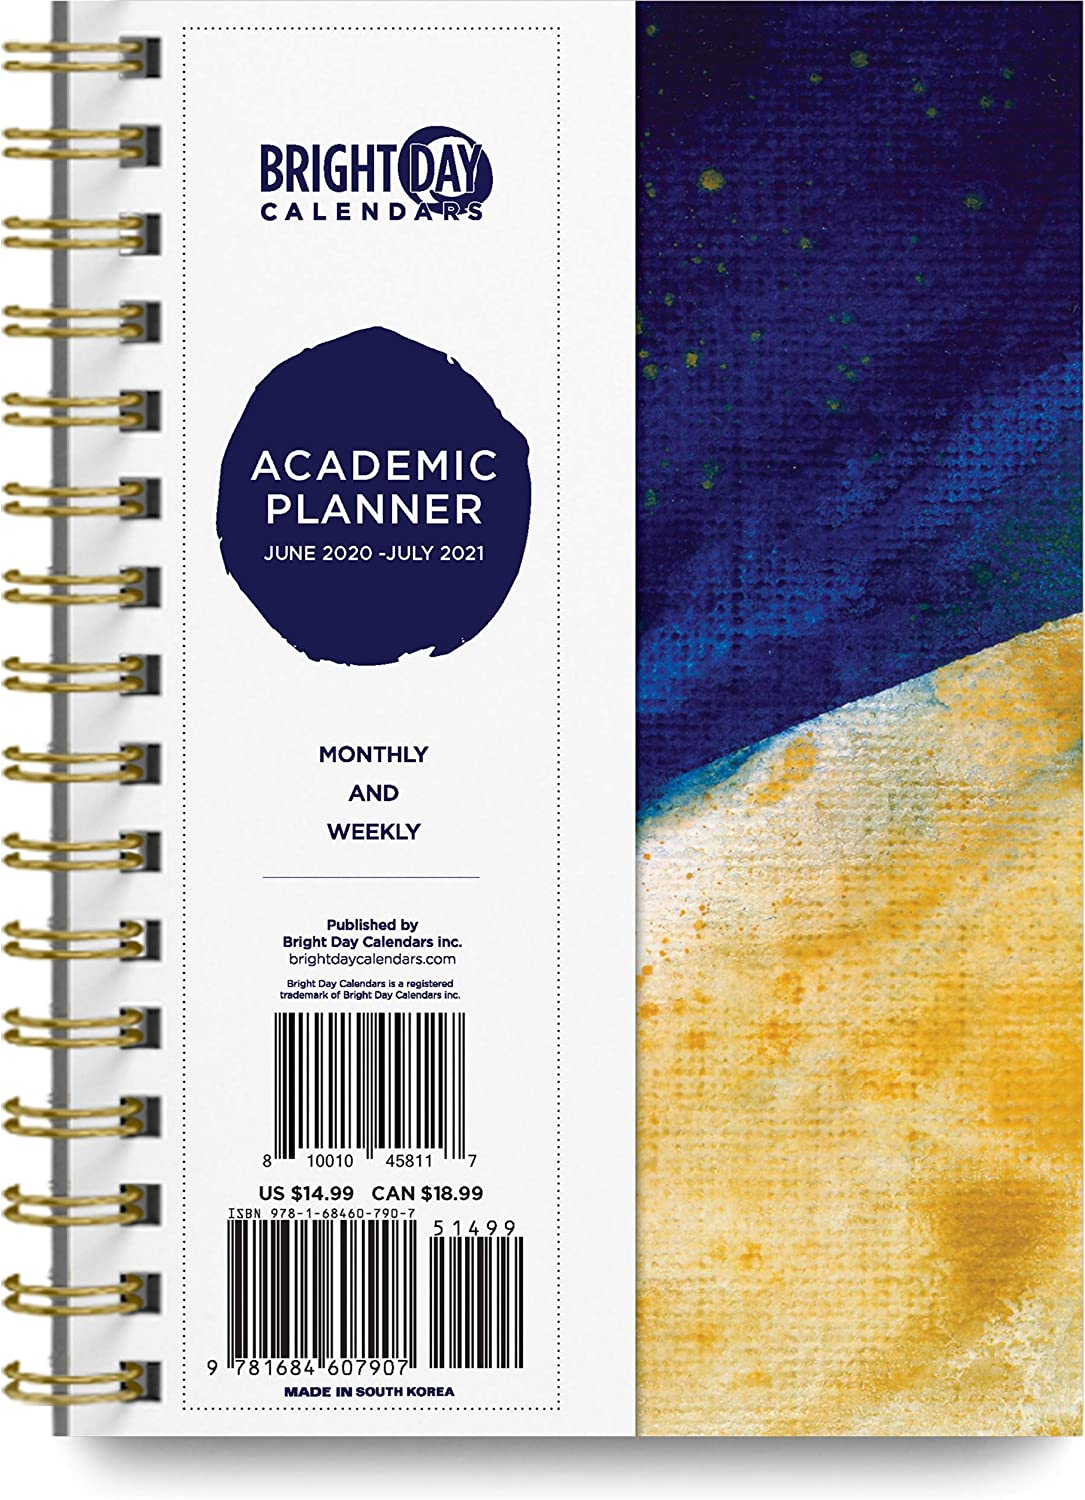 2020-2021 Academic Planner -Yearly Monthly Weekly Daily Calendar Organizer by Bright Day Spiral Bound Dated Agenda Flexible Cover Notebook (Gold and Blue Splash, 8.25 x 6.25)